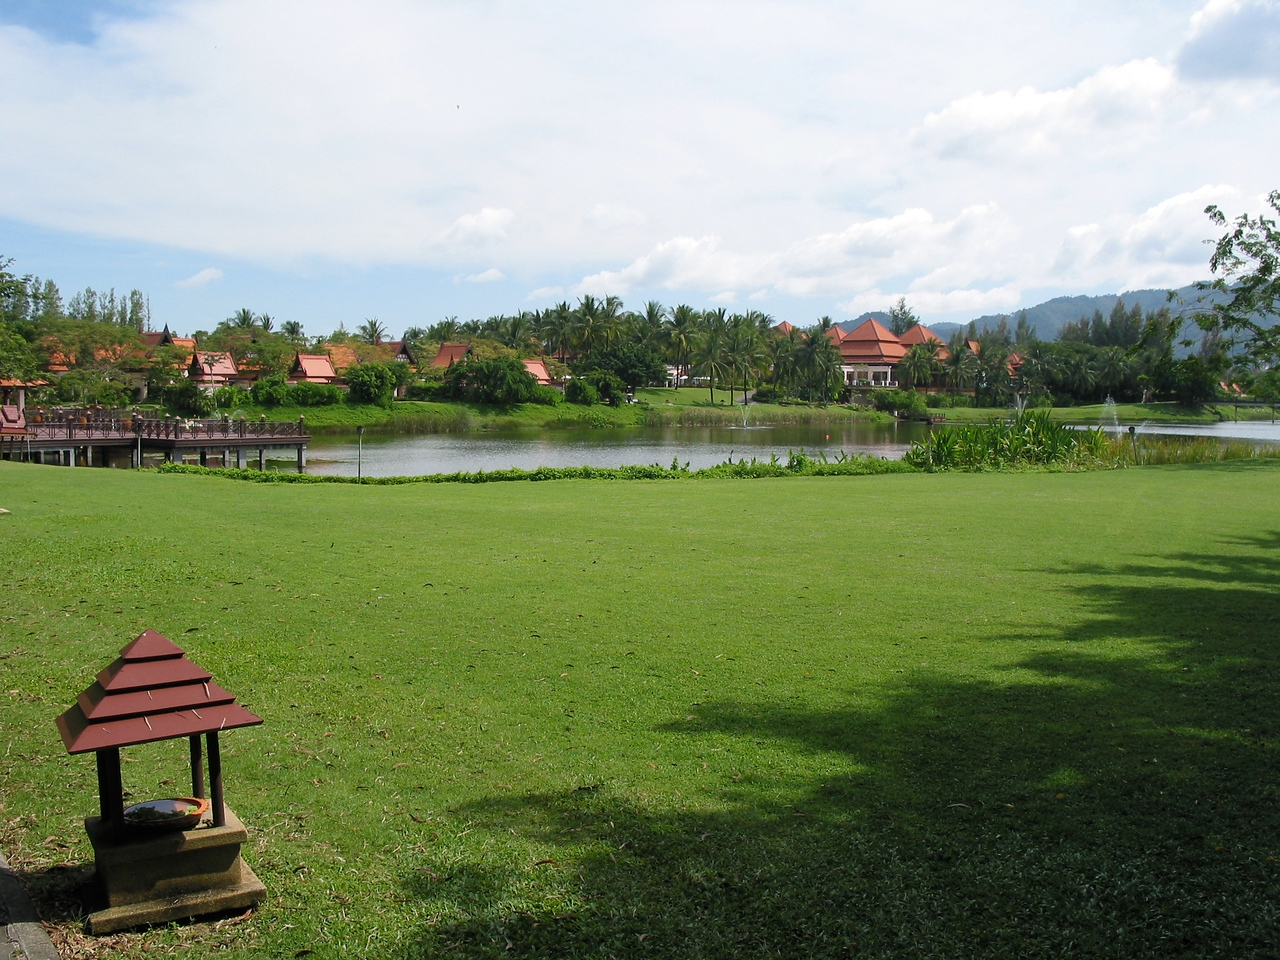 Besides the large, spacious grounds of the hotel, the resort also features an 18 hole golf course.